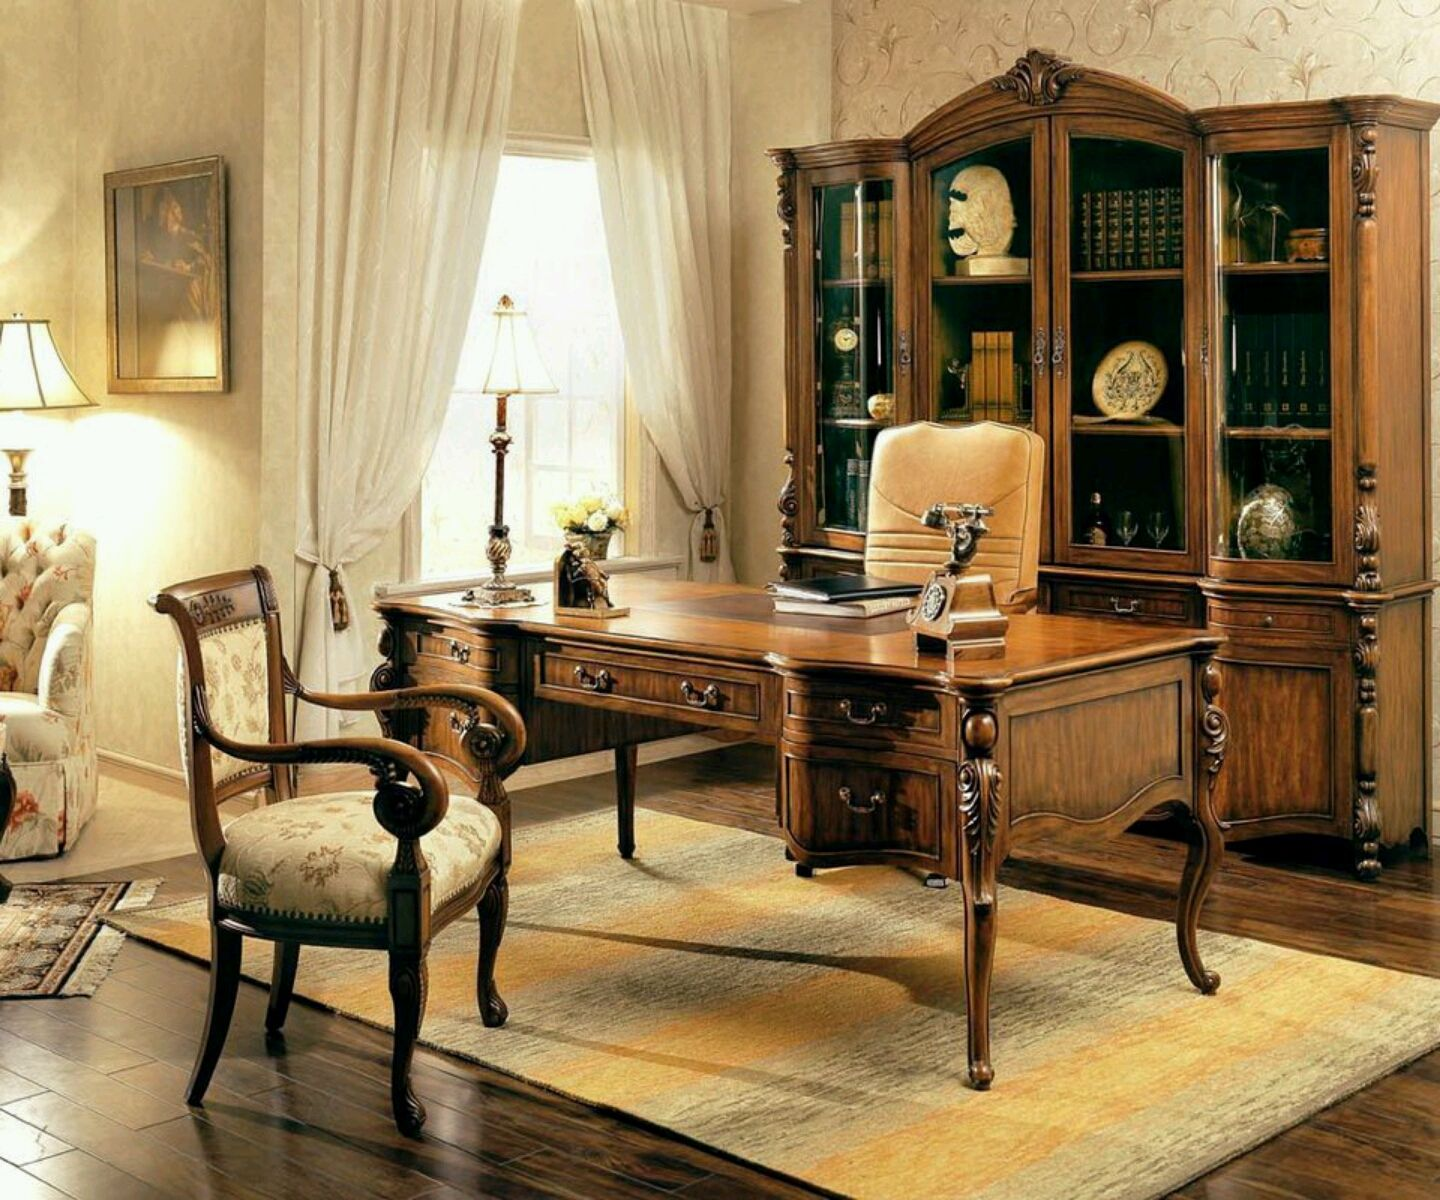 Furnitures Designs thank you for visiting , modern study room furnitures interior